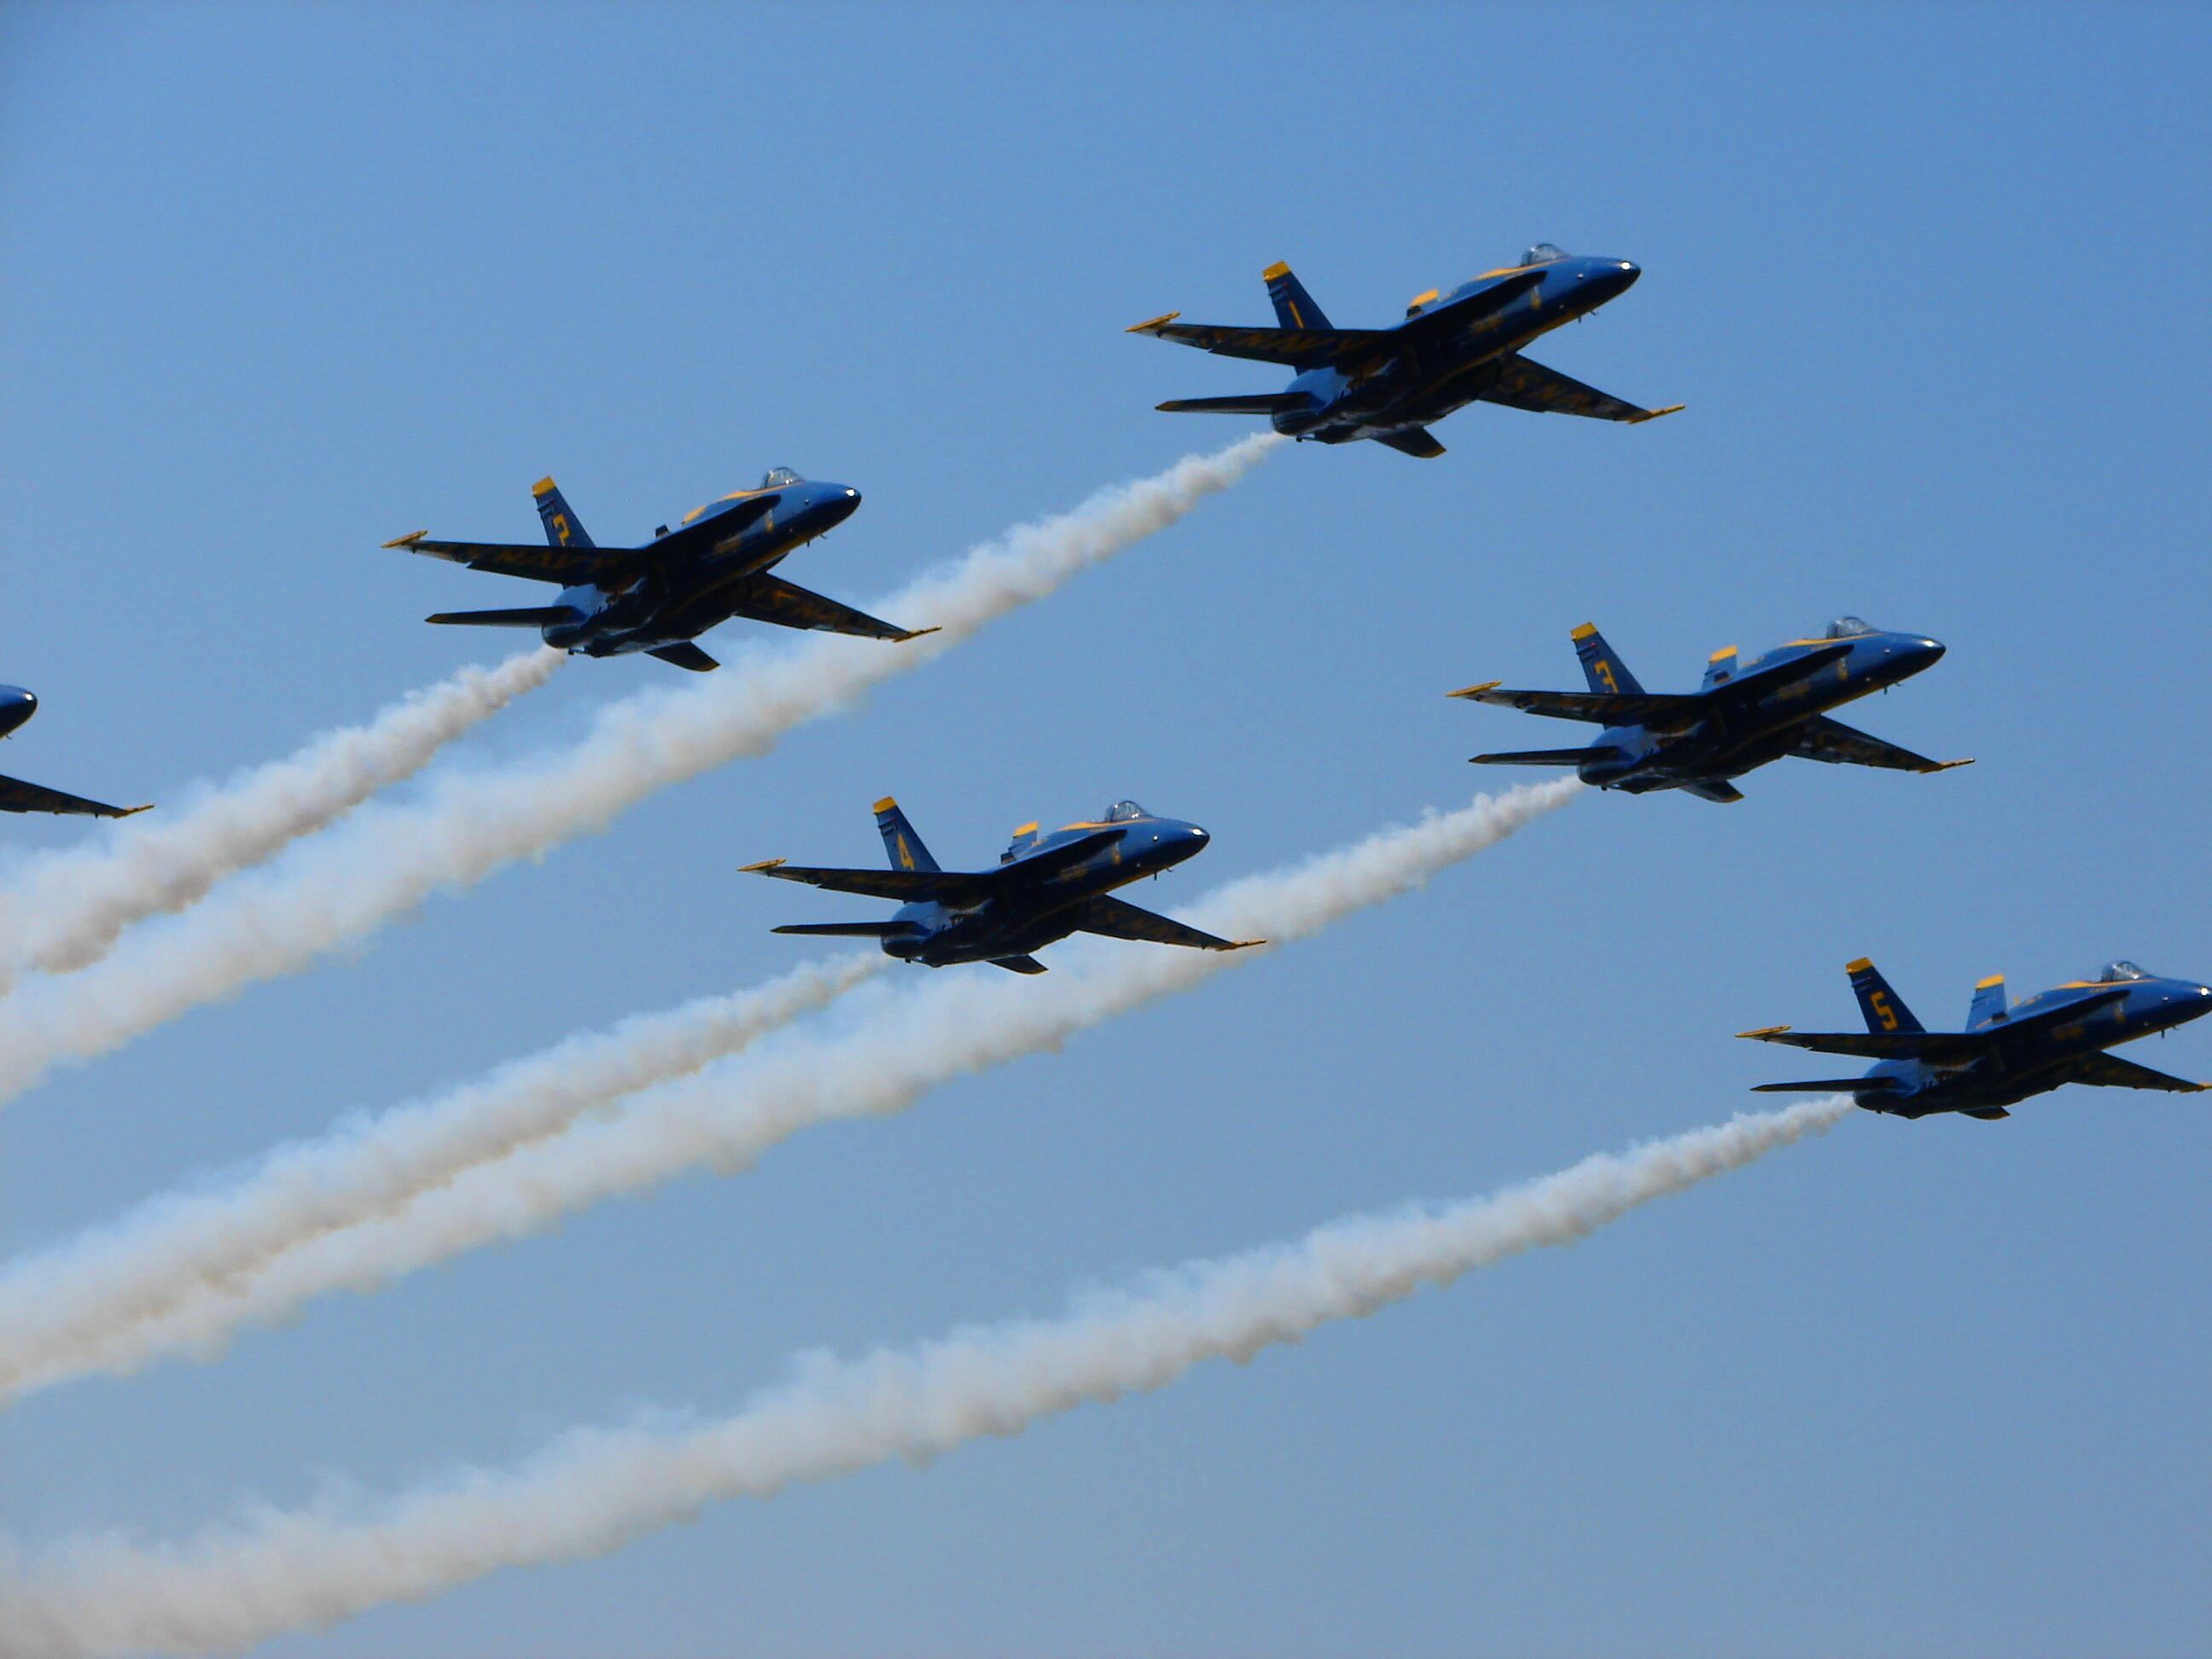 Blue Angels Air Show Flight 04 by FantasyStock